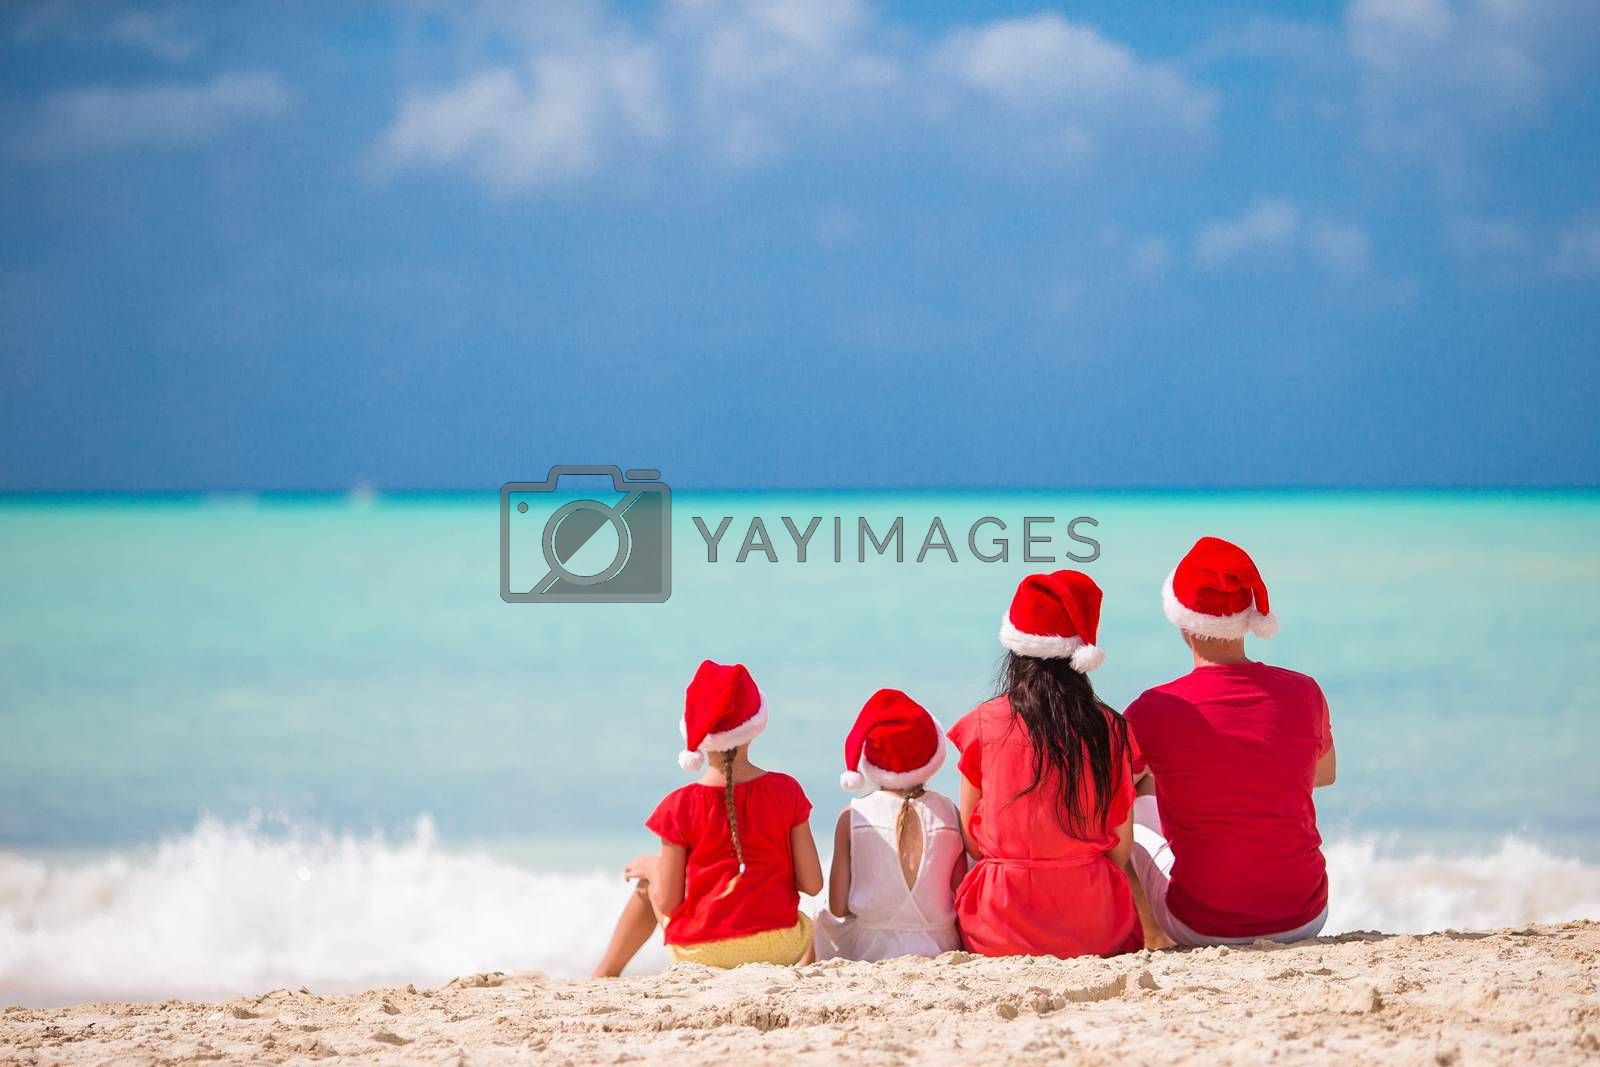 Happy family on a tropical beach celebrating Christmas vacation - Image